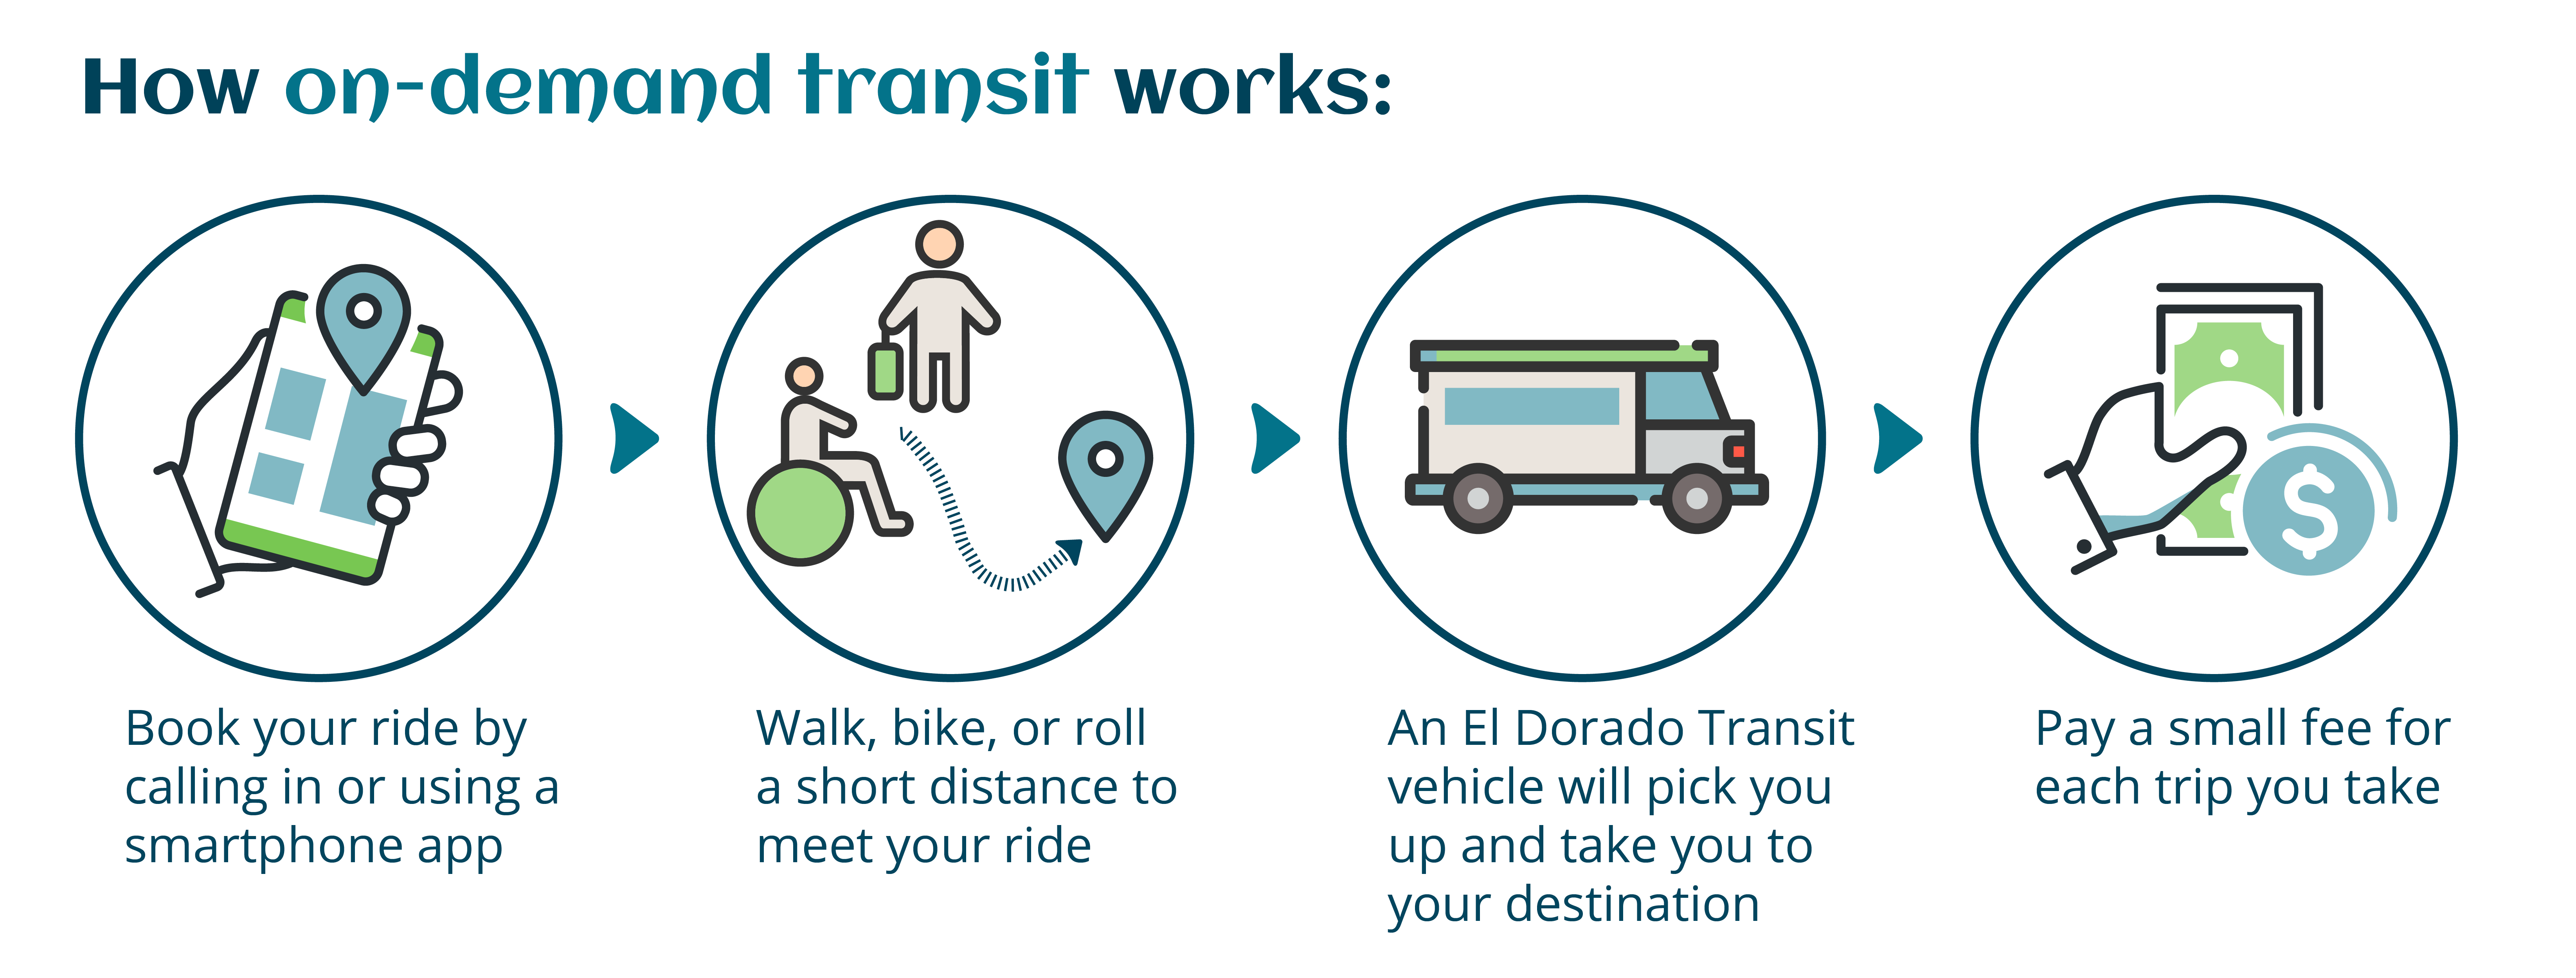 Text reads: How on-demand transit works - Book your ride by calling in or using a smartphone app; walk, bike, or roll a short distance to meet your ride; an El Dorado Transit vehicle will pick you up and take you to your destination; pay a small fee for each trip you take.